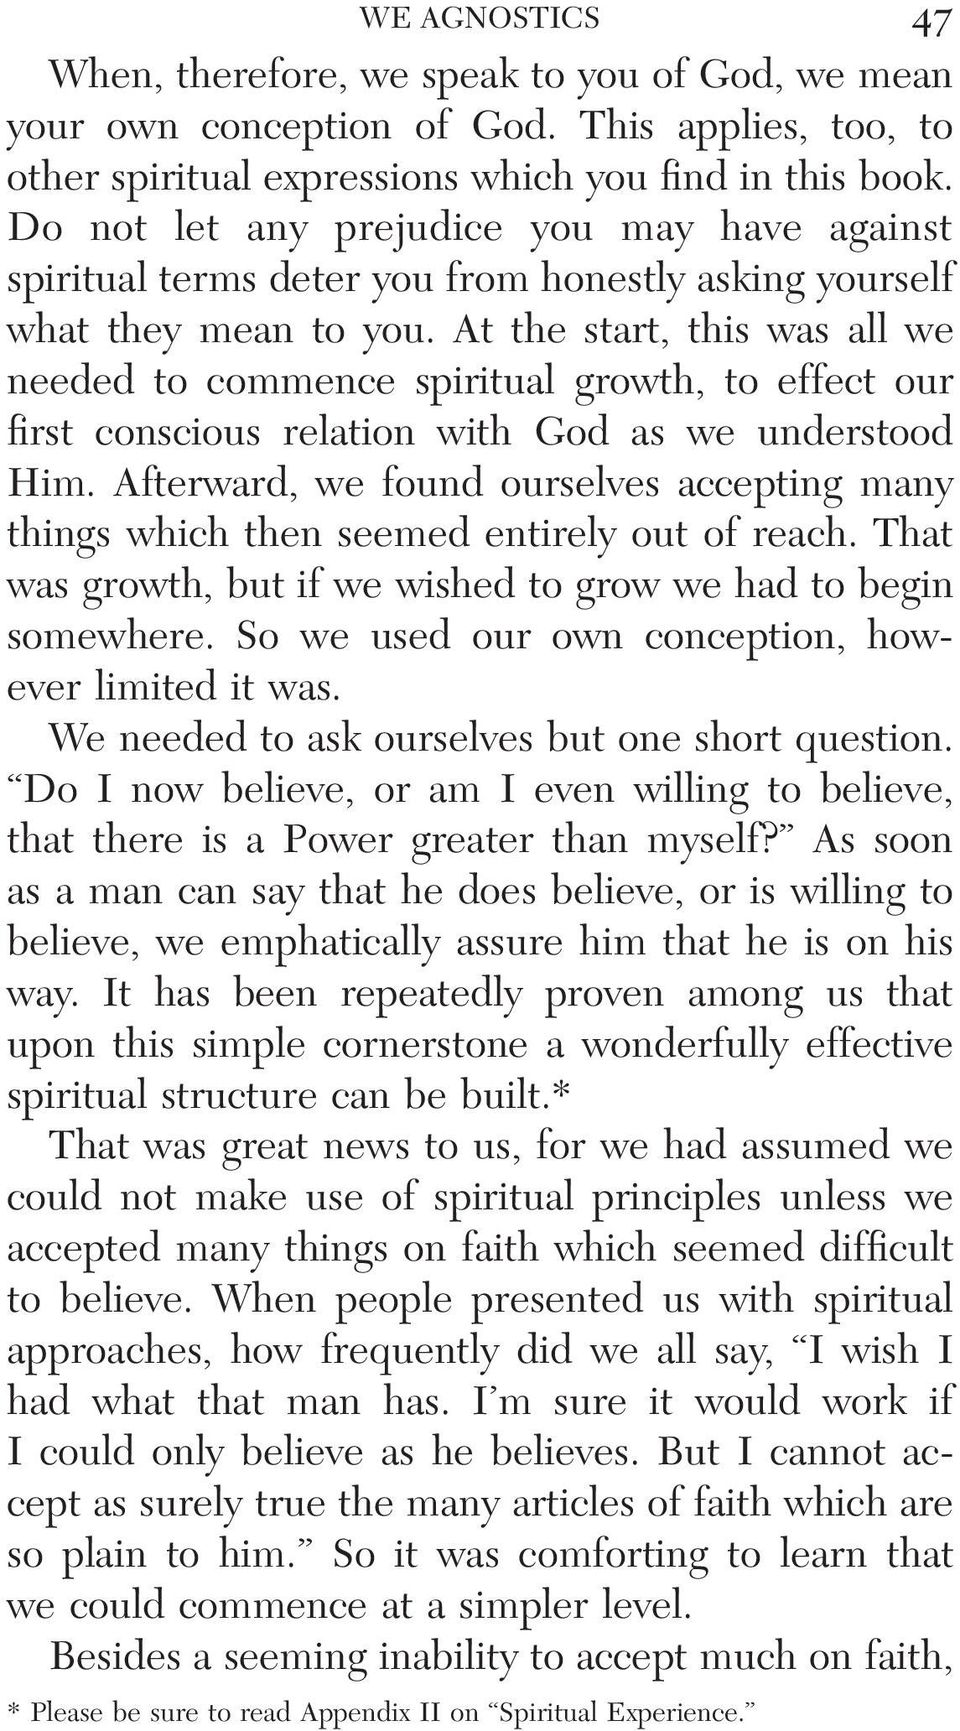 At the start, this was all we needed to commence spiritual growth, to effect our first conscious relation with God as we understood Him.